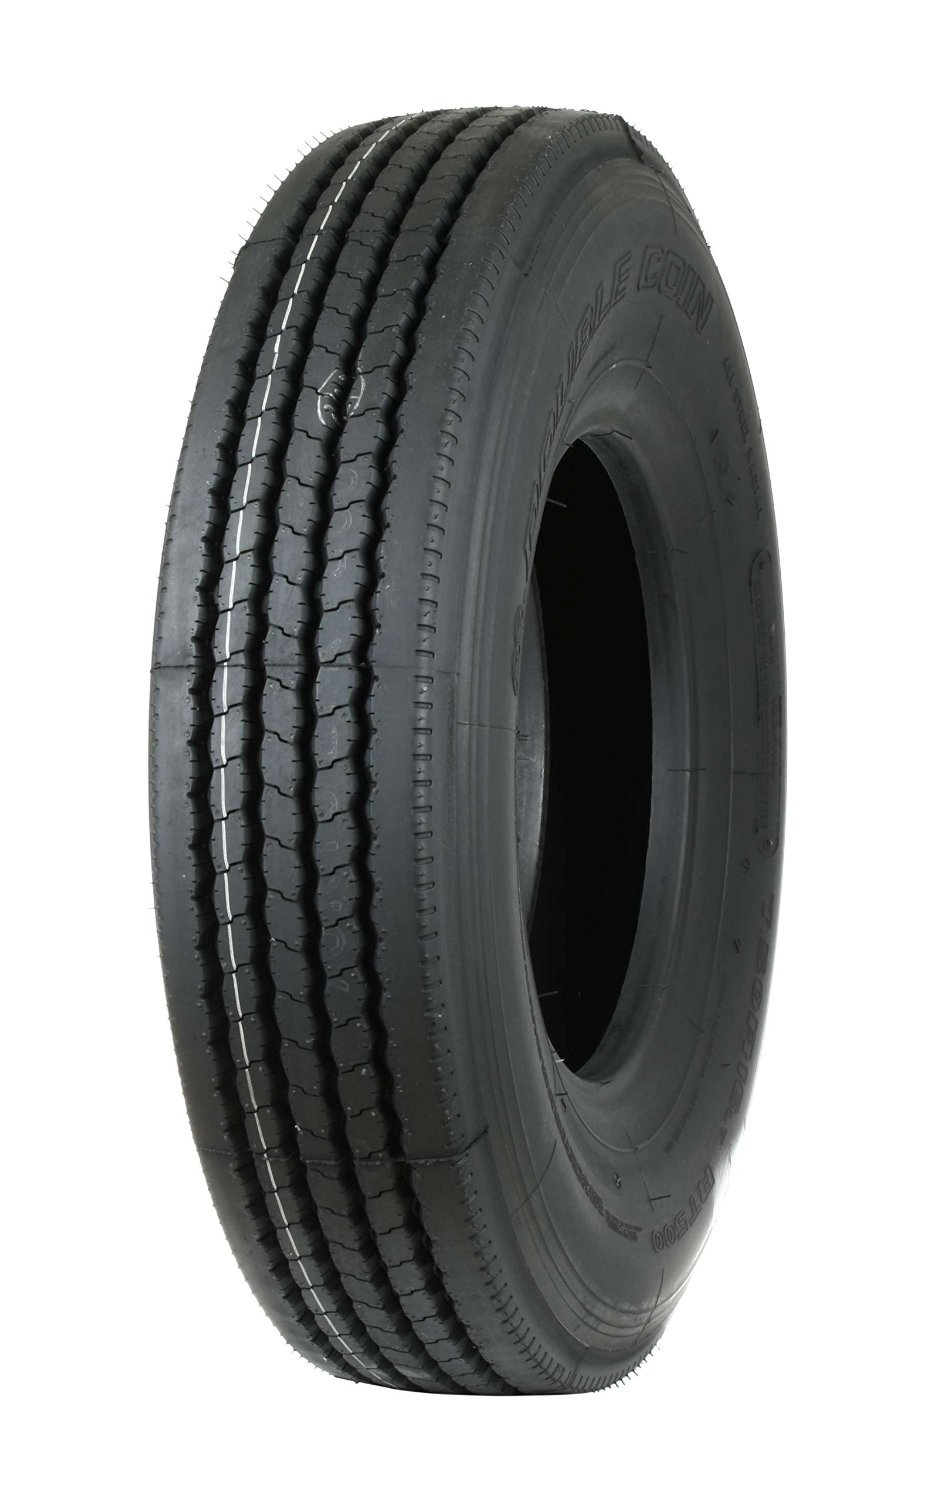 Double Coin 1133396795 RT500 Premium Low Profile All-Position Multi-Use Commercial Radial Truck Tire - 235/75R17.5 16 ply